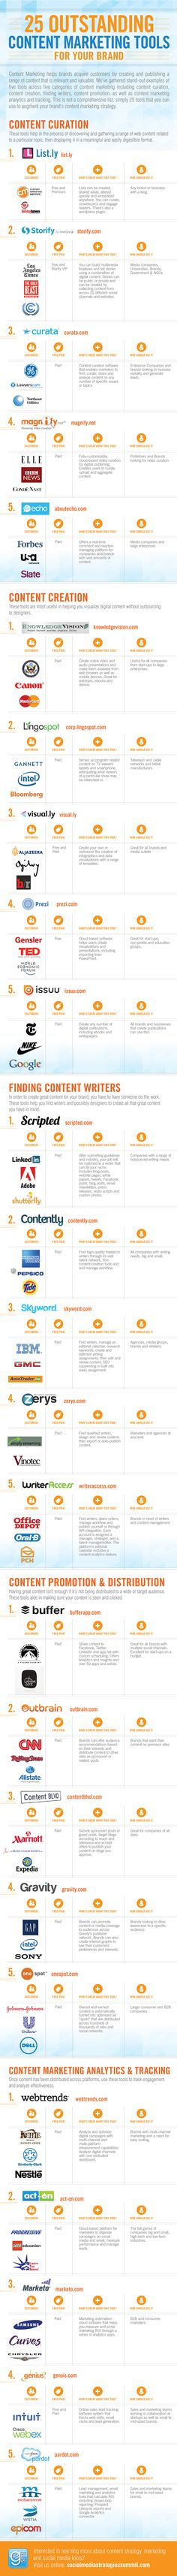 25 Outstanding Content Marketing Tools For Brands To Use In 2014 - #Infographic via #BornToBeSocial